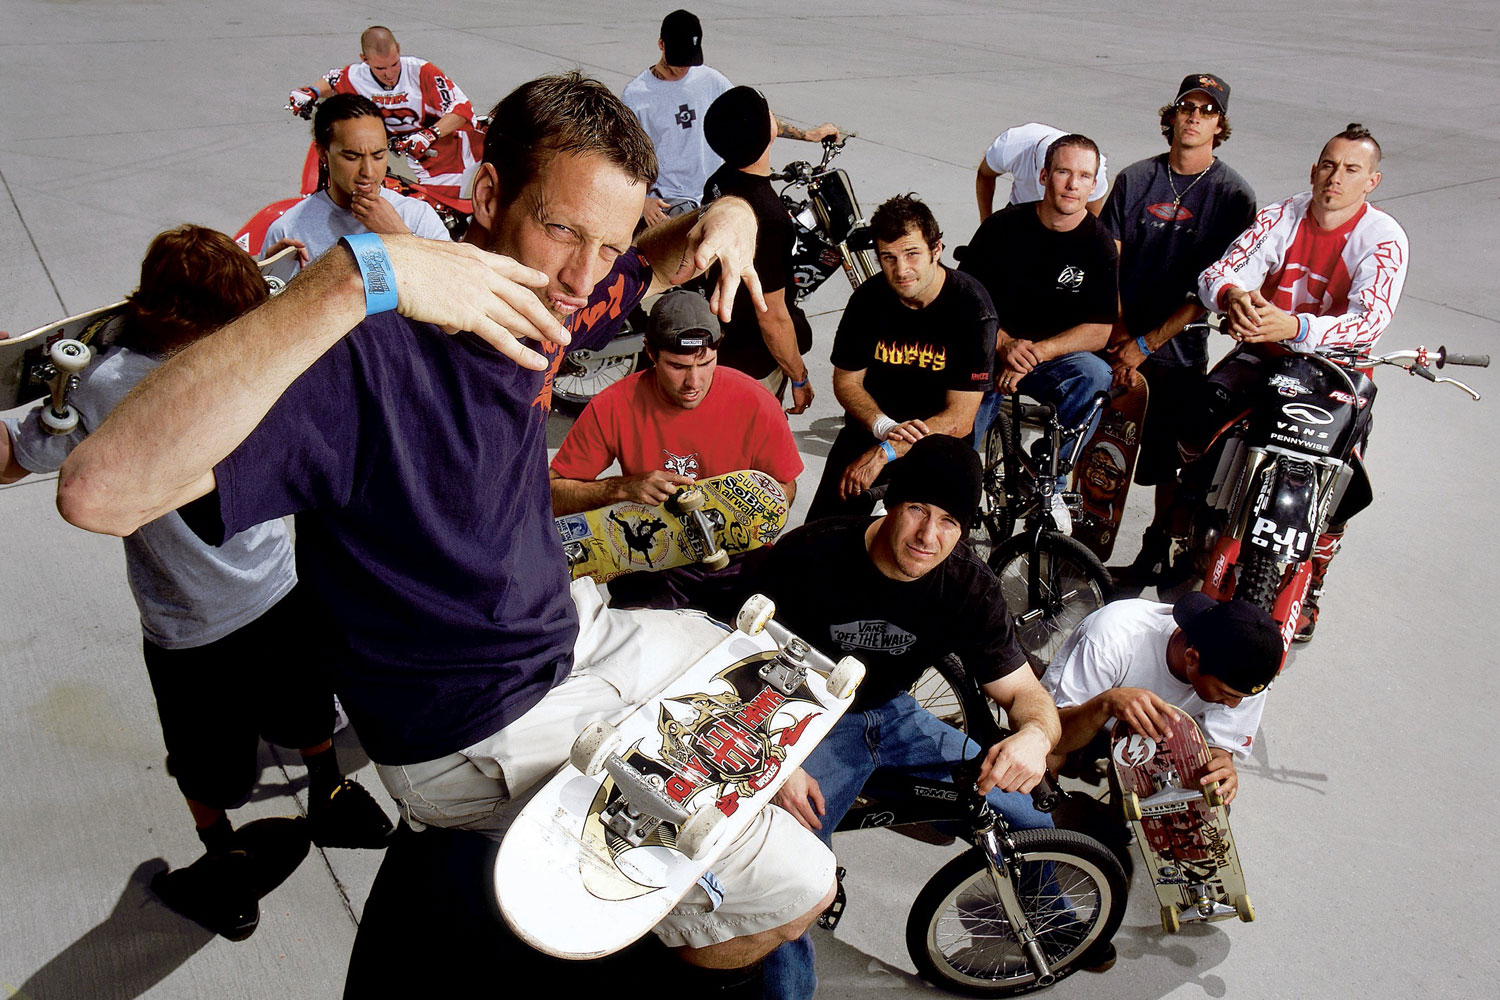 Tony Hawk takes a photo with fellow skateboarders and freestyle bikers in San Bernadino, CA.